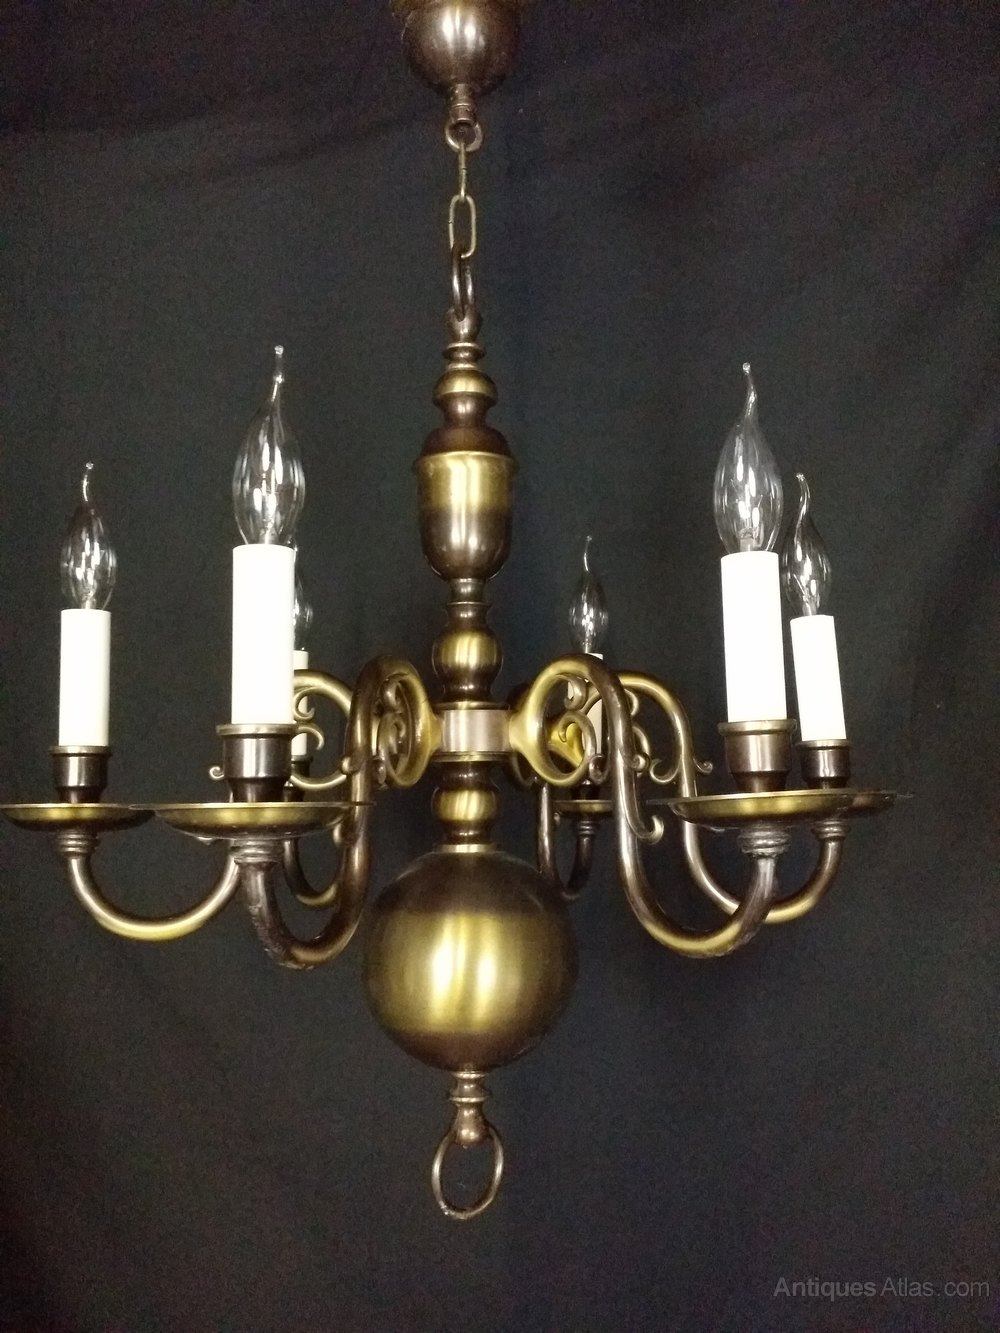 Brass flemish chandeliers flemish chandeliers this is a excellent quality six light brass flemish chandelier although brass this chandelier has a attractive bronze and brass finish to it being brass arubaitofo Gallery